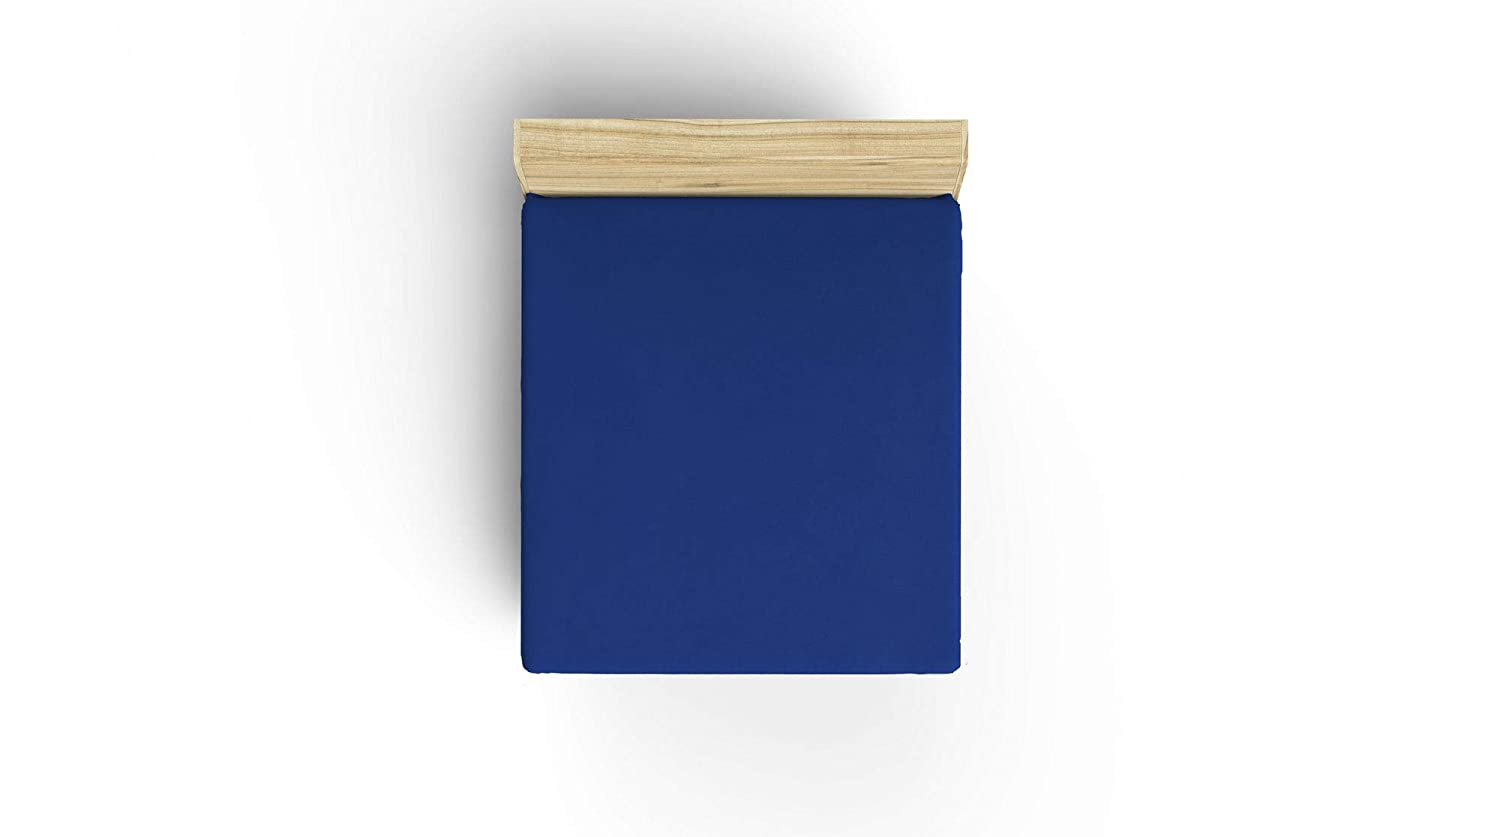 Ranforce Single Fitted Sheet /%100 Premium Turkish Cotton 36 x 76 Inches Smooth Dark Blue Simple Plain One Color Formless Straight Dark Blue Dark Blue Sanforized Anti Bacterial Protection